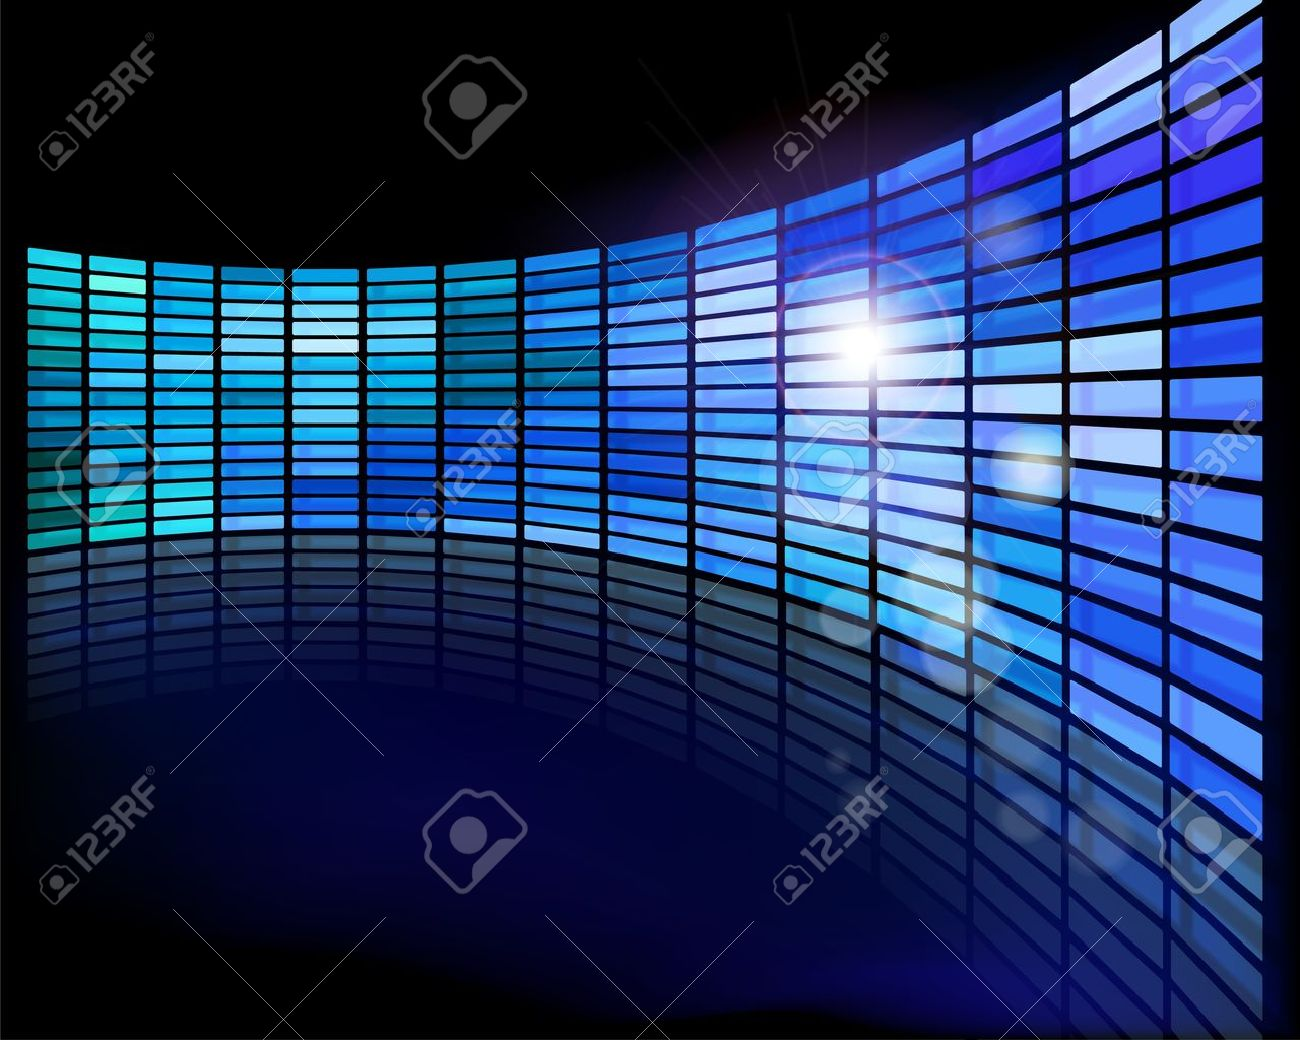 Led Screen Image Led Screen Wall of Screens